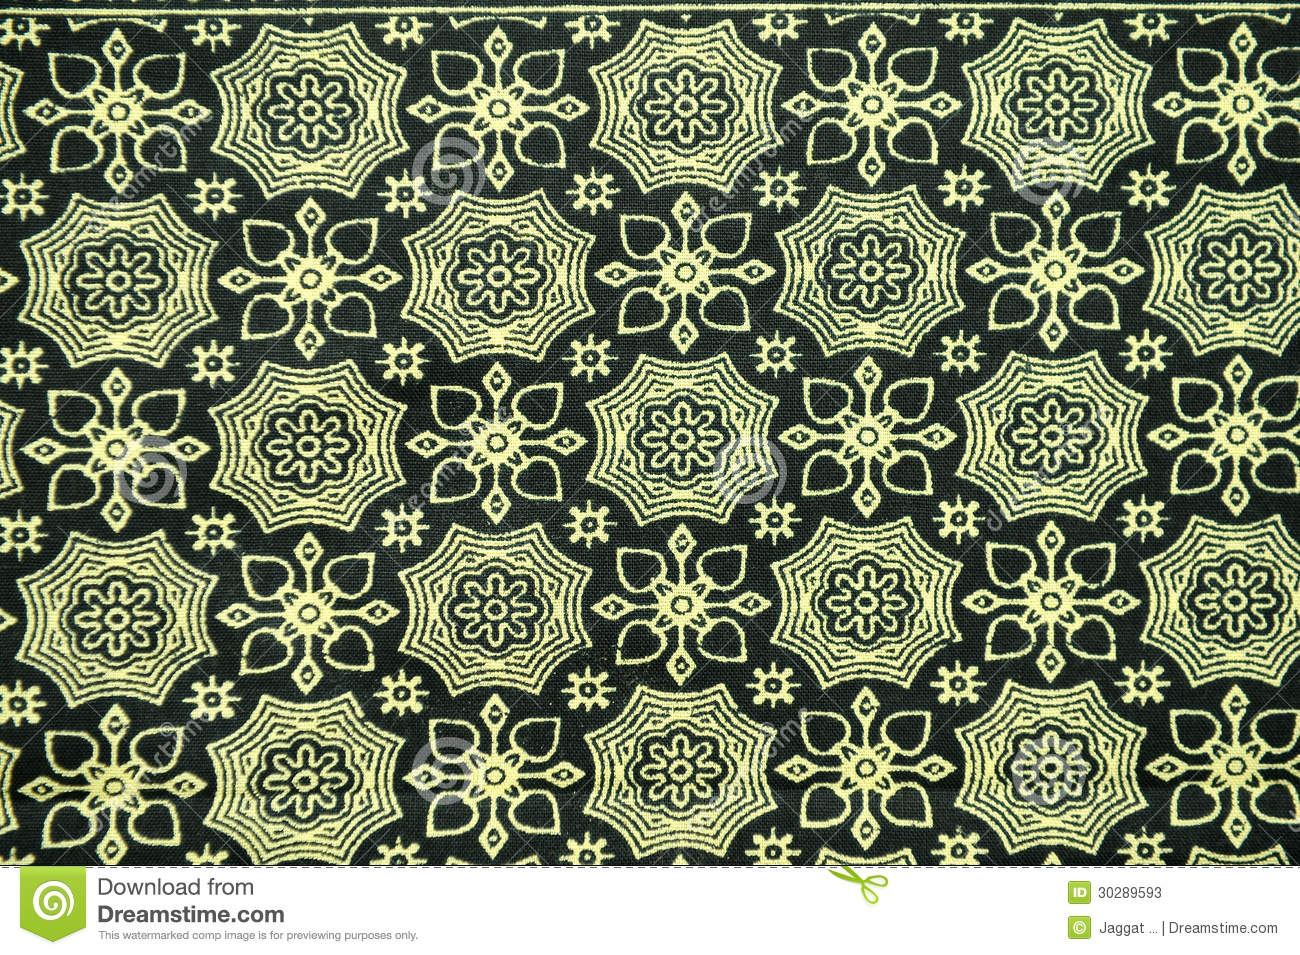 Background batik pattern stock photography image 803022 - Batik Sarong Pattern Background Stock Photos